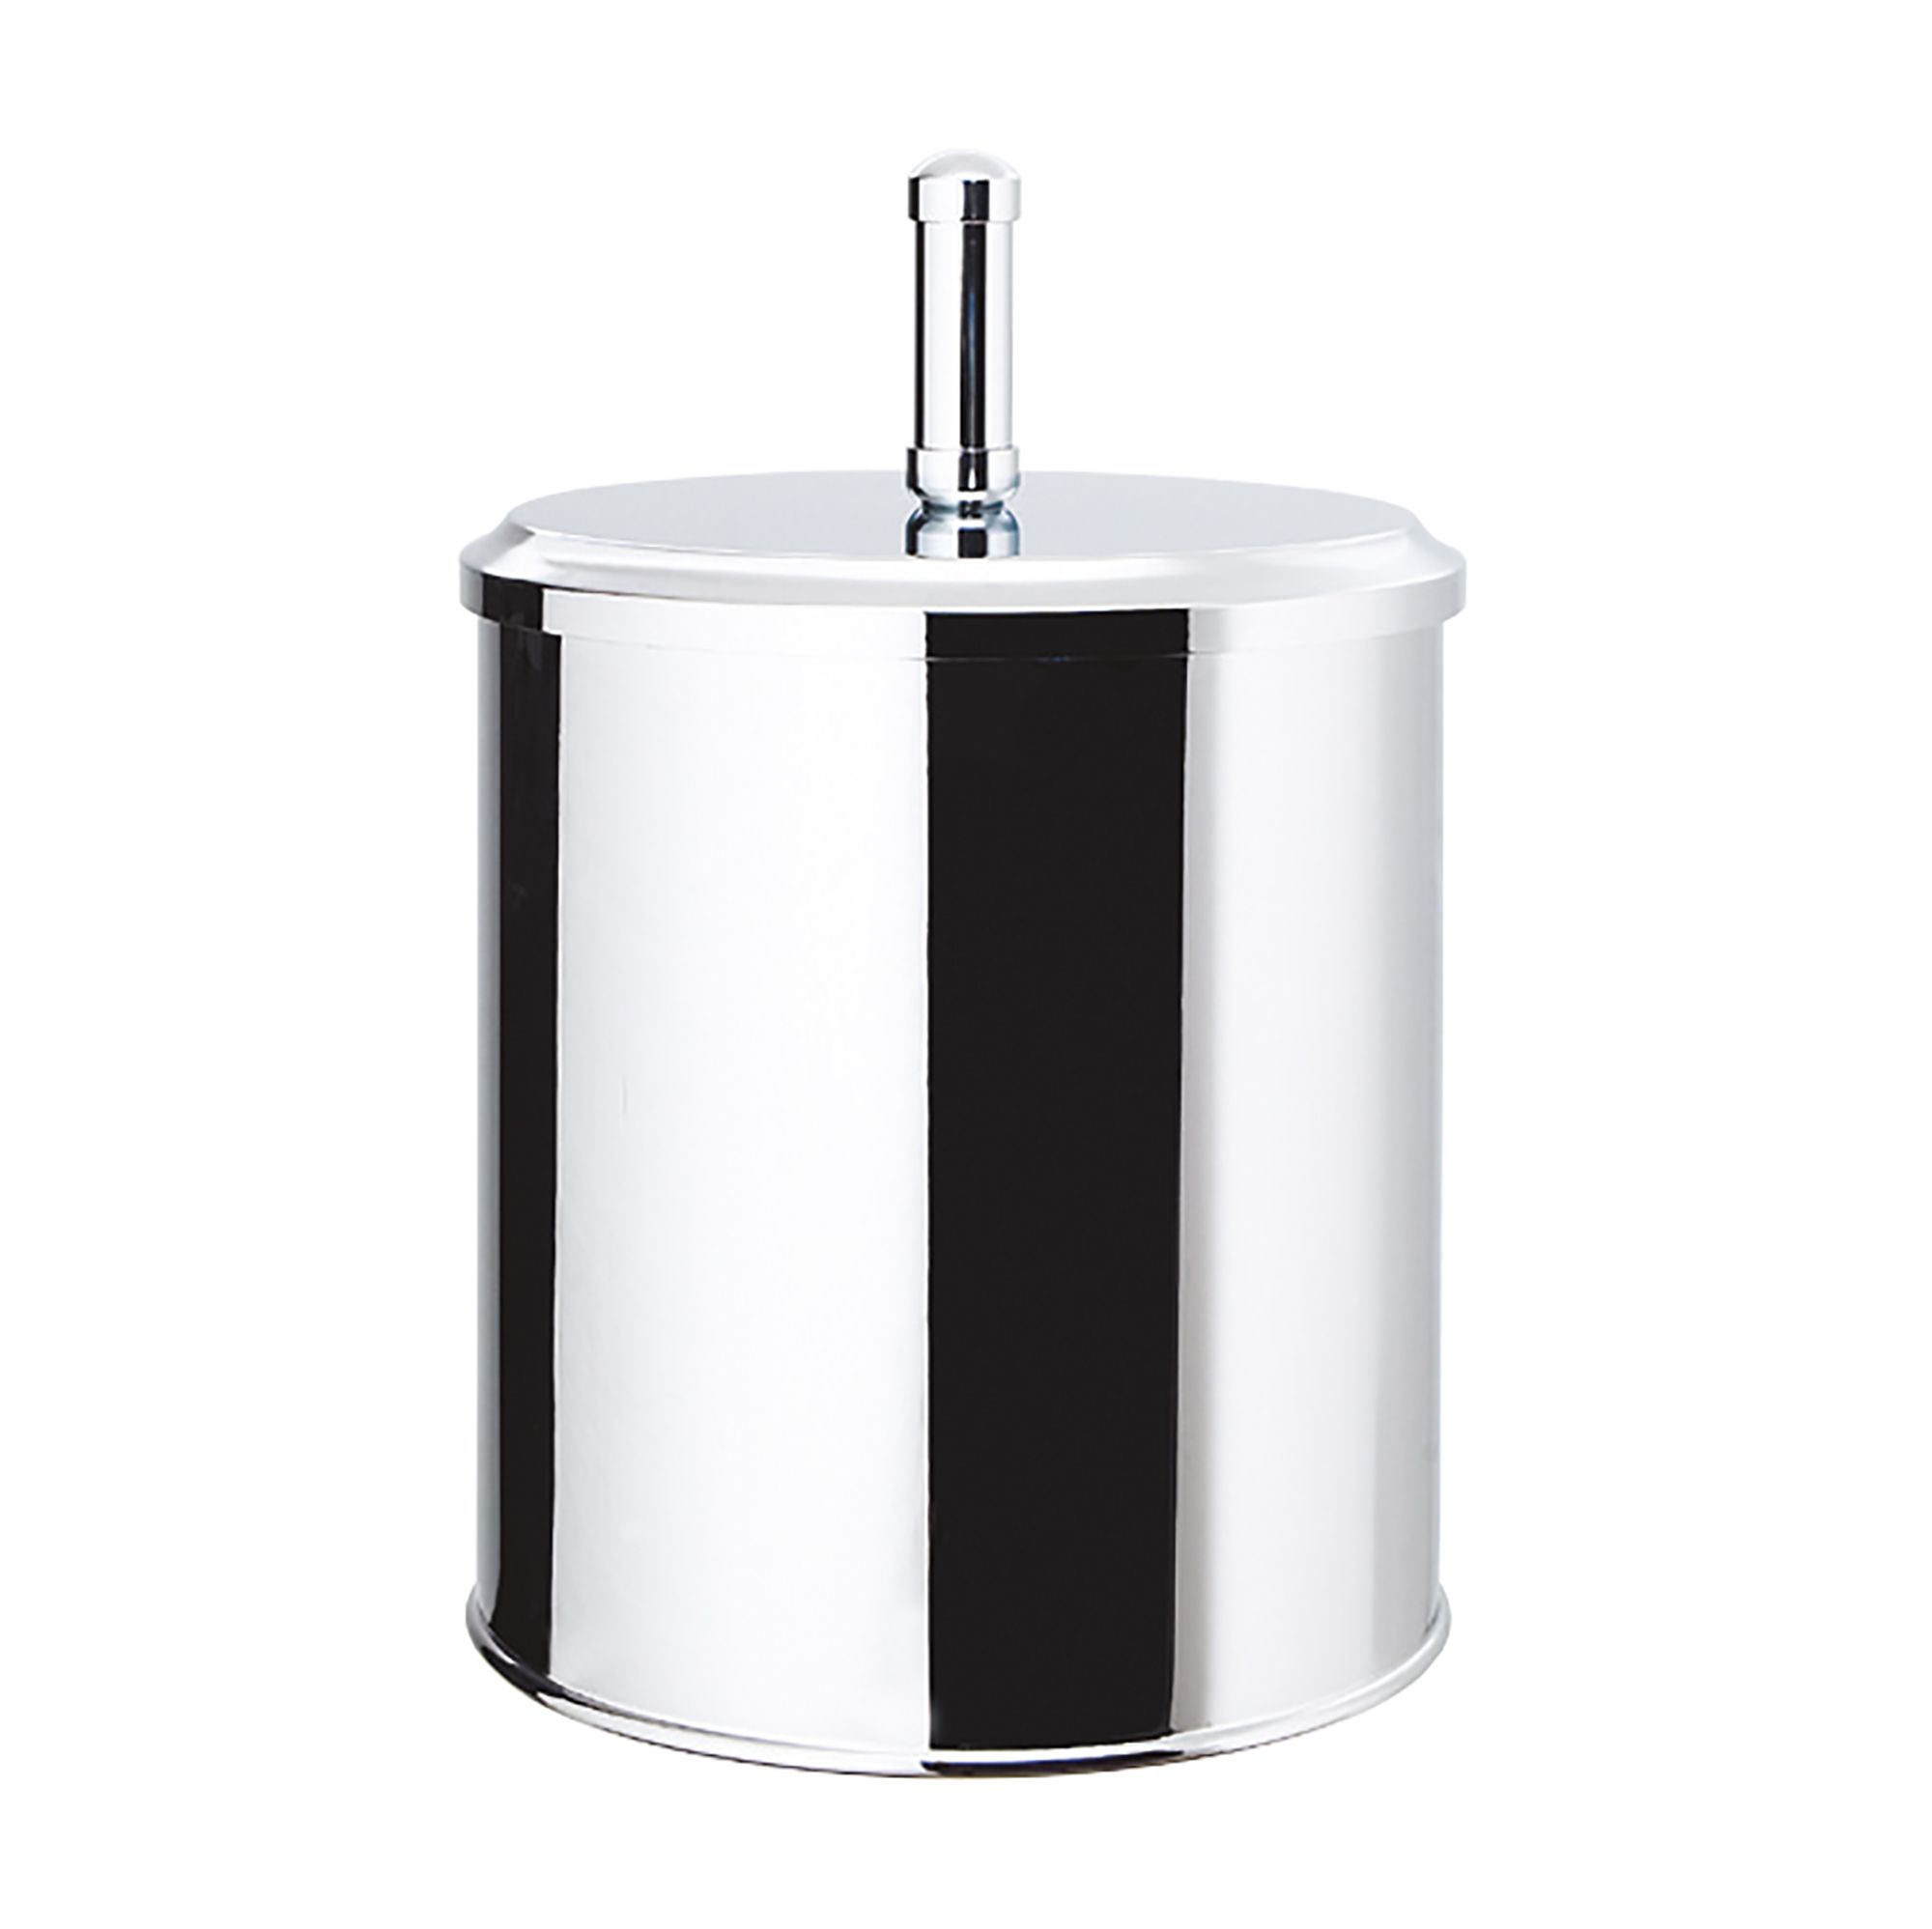 Richmond Waste Bin with Lid